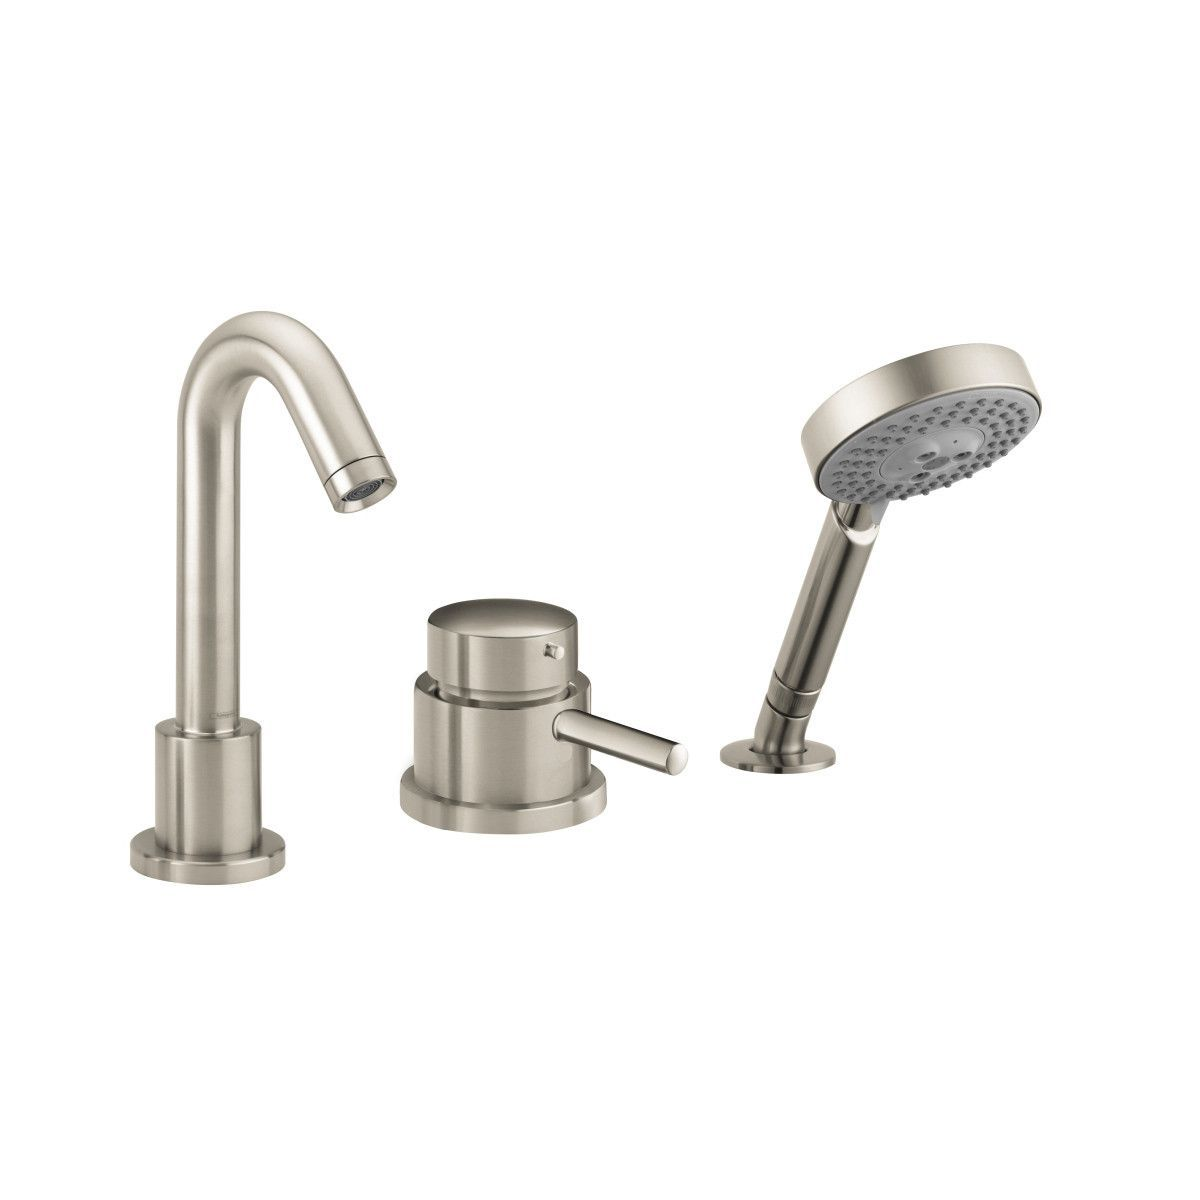 Hansgrohe 04127000 Chrome Talis S Tub Filler Faucet With Thermostatic /  Volume Controls, Non Diverter